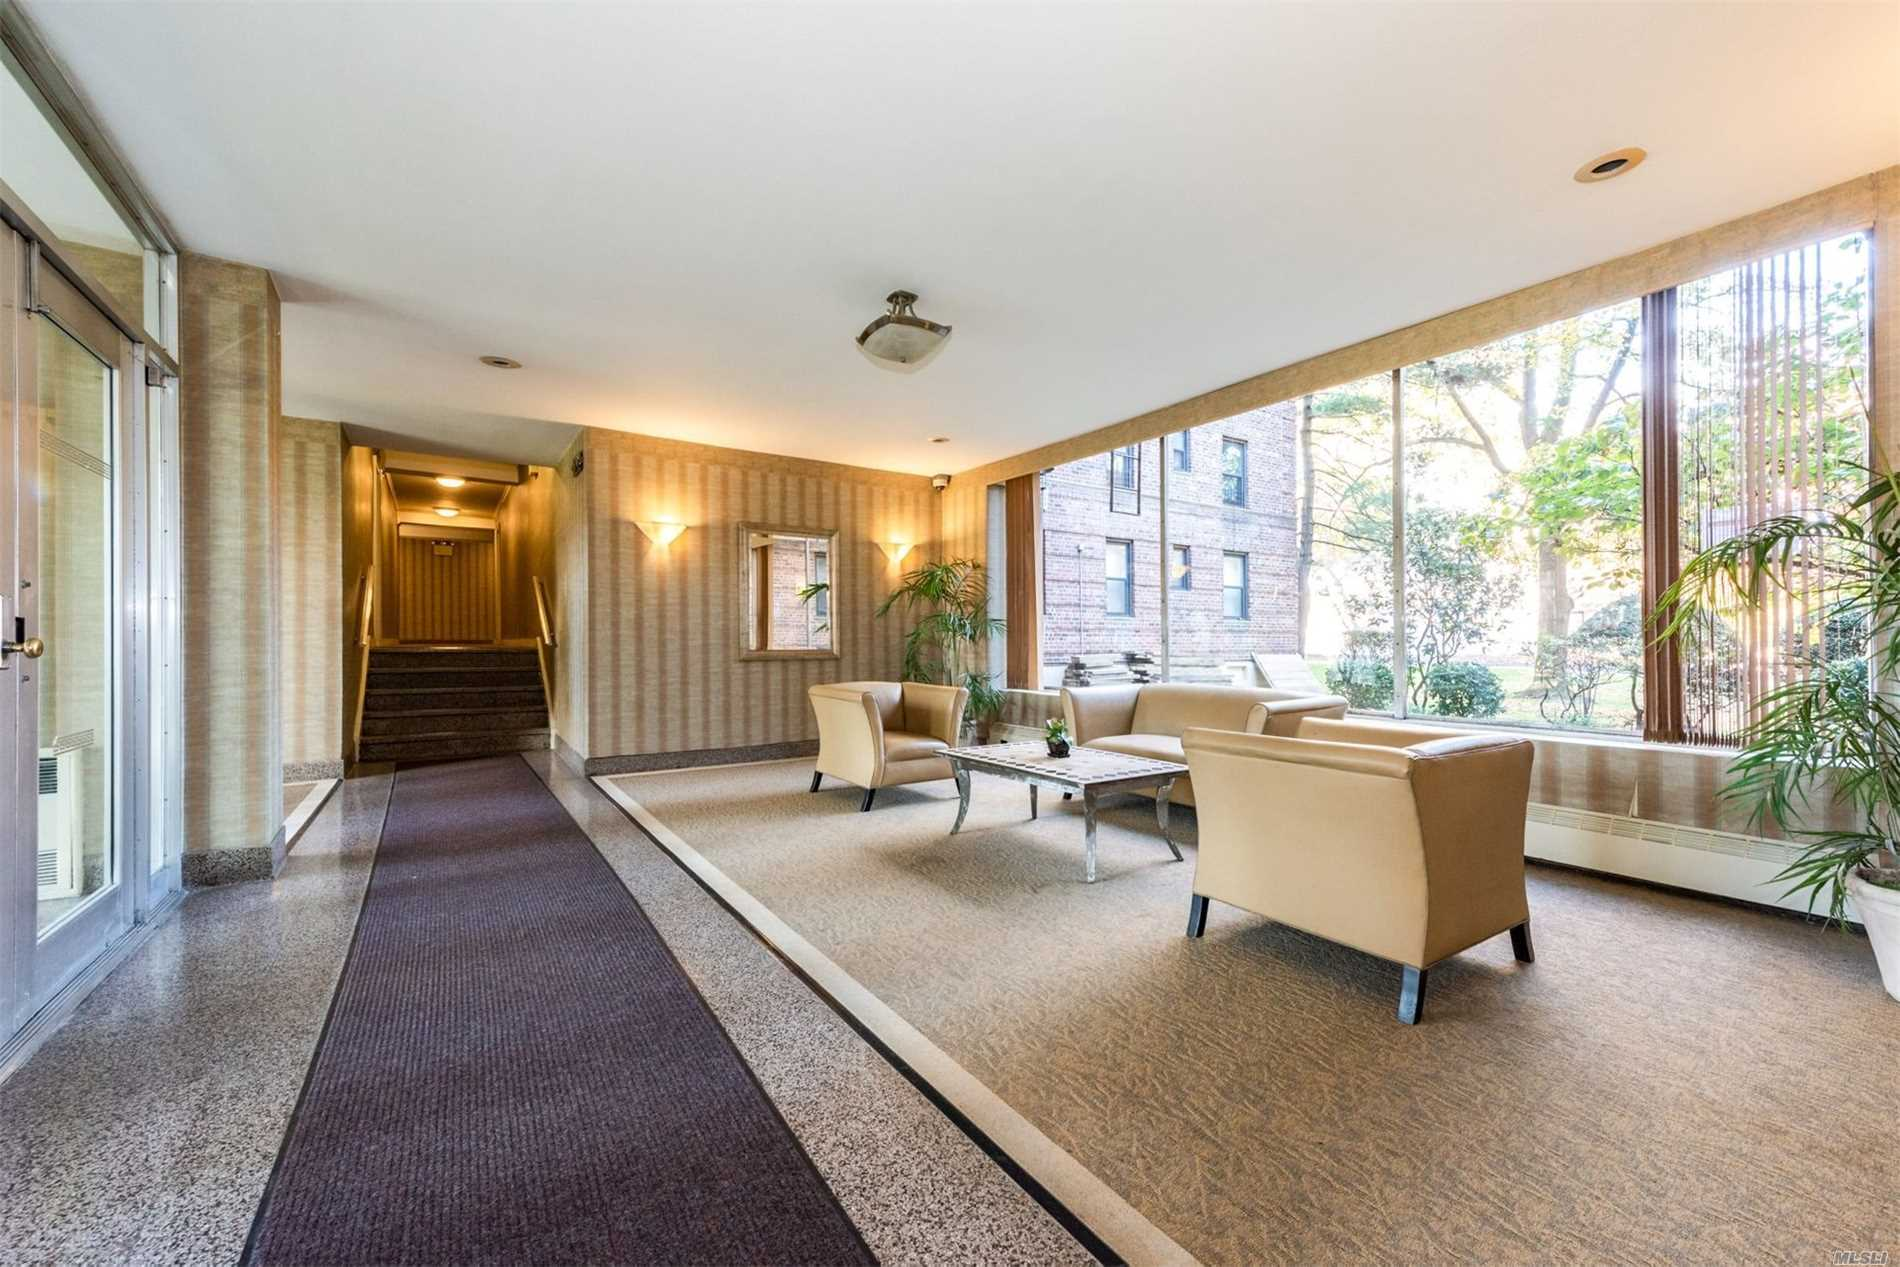 Welcome!!! to this Beautiful Apartment featuring 2 Huge Bedrooms, 1 full Bath, plenty spacious closets.Pool Club Access, 24Hr Laundry, Bike room and Storage. Include Individual Parking Spot, Grand Central Pkwy. Close to Mayor transportation, (45 minutes to Manhattan Express Bus)/ Q88/Q27 to Flushing.busy shopping centers and parks.  Zoned for Ps 188 Kingsbury, and MUCH MORE !!! DON'T MISS OUT !!